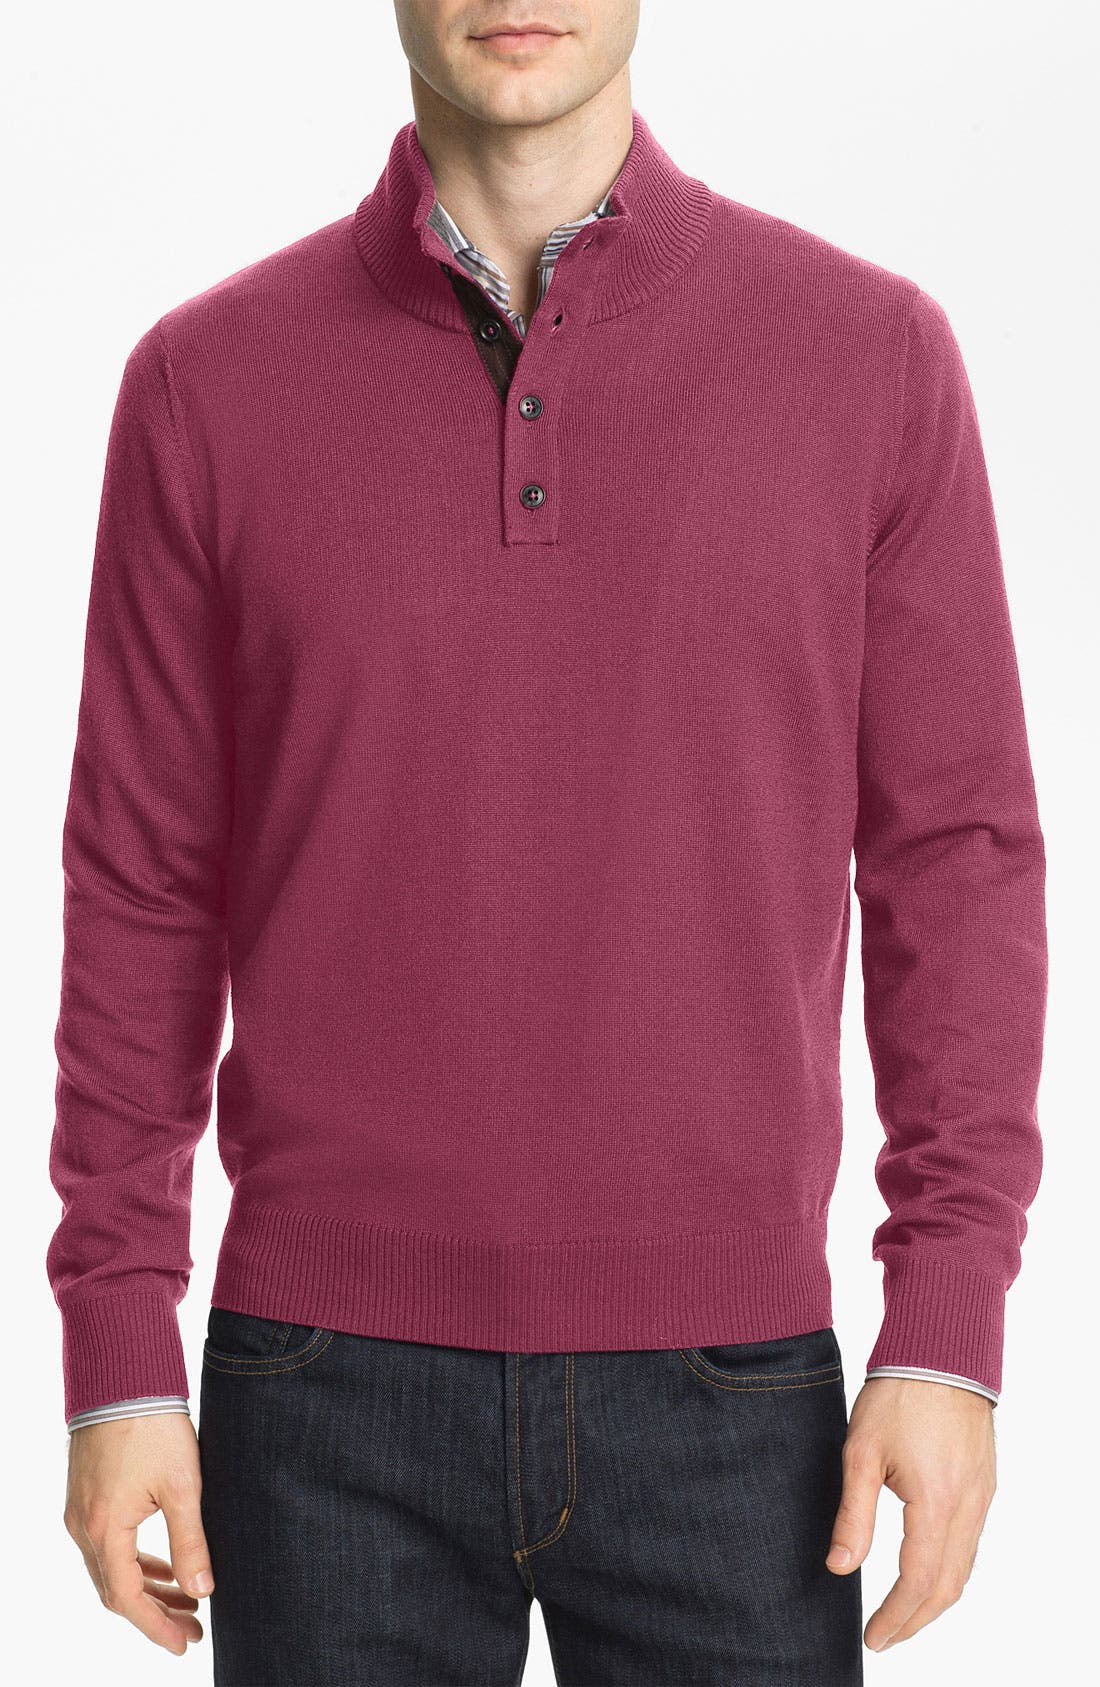 Main Image - Thomas Dean Mock Neck Merino Wool Sweater